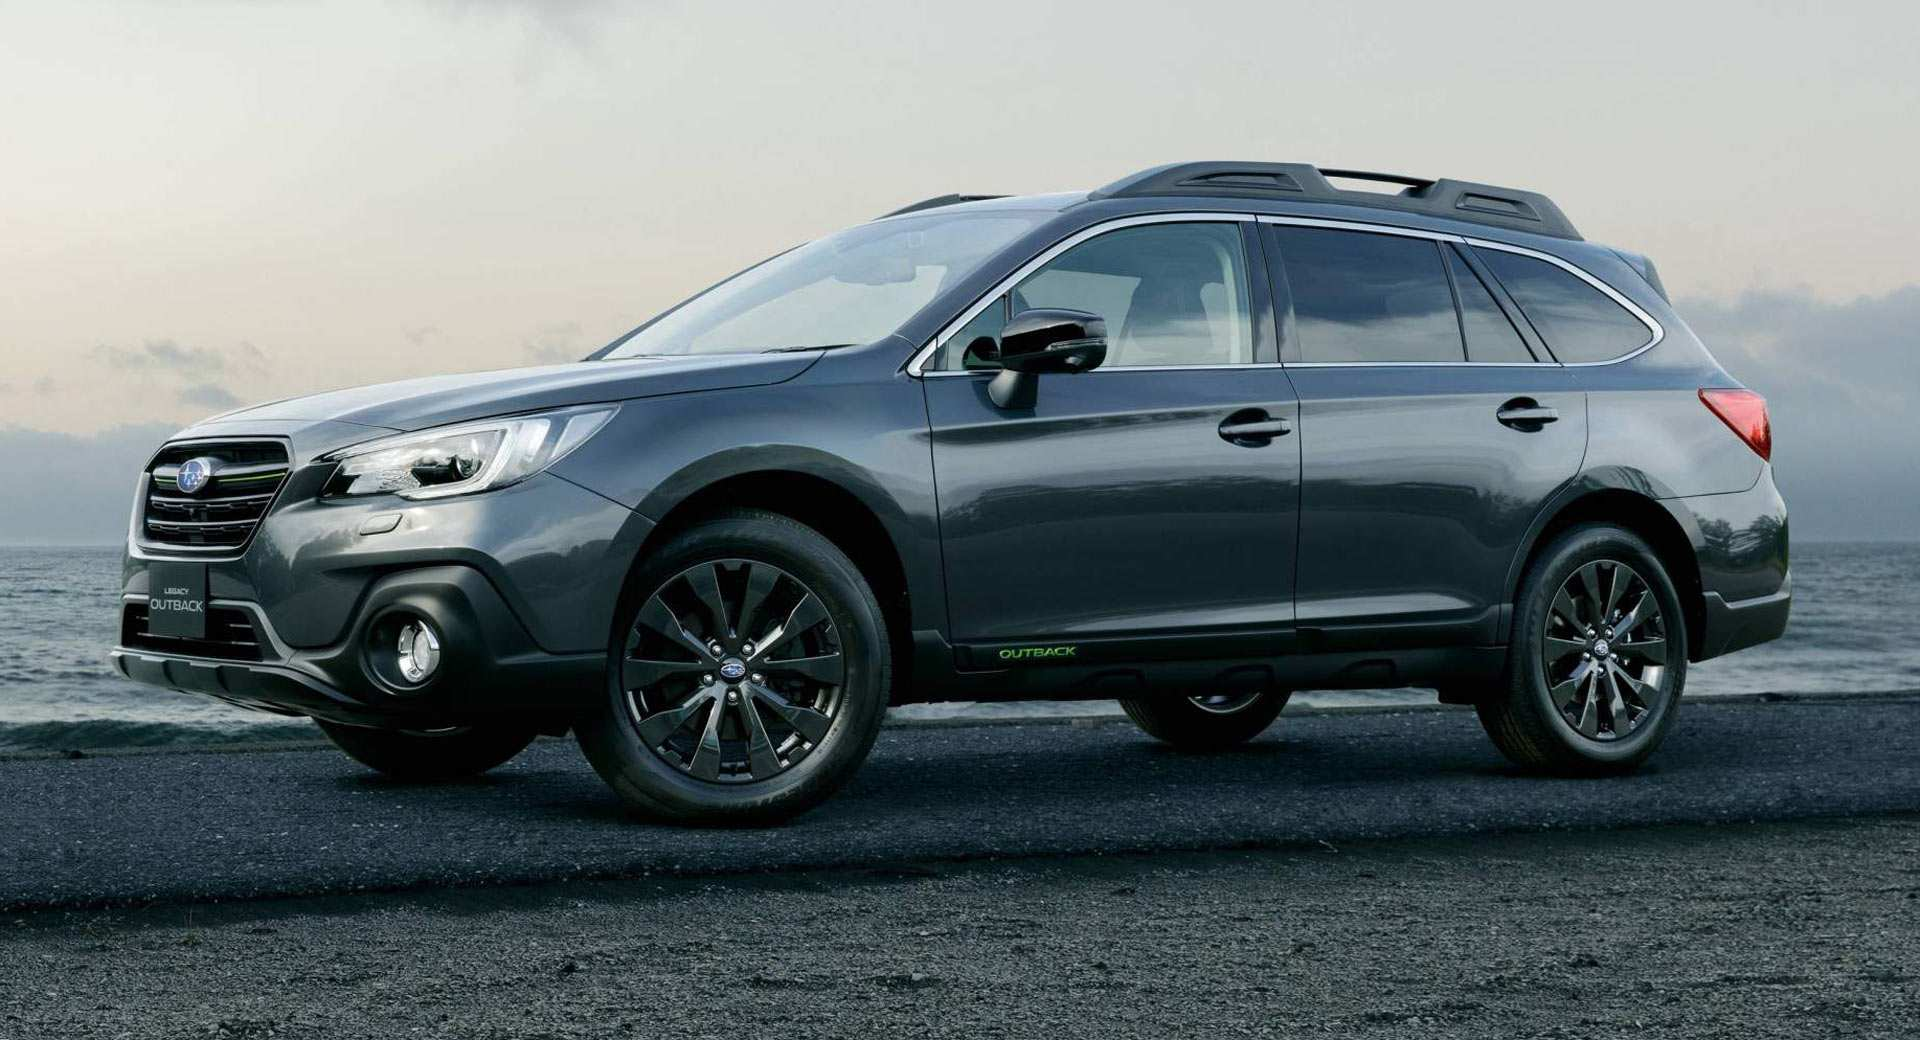 34 New Subaru Outback 2020 Spy Configurations by Subaru Outback 2020 Spy